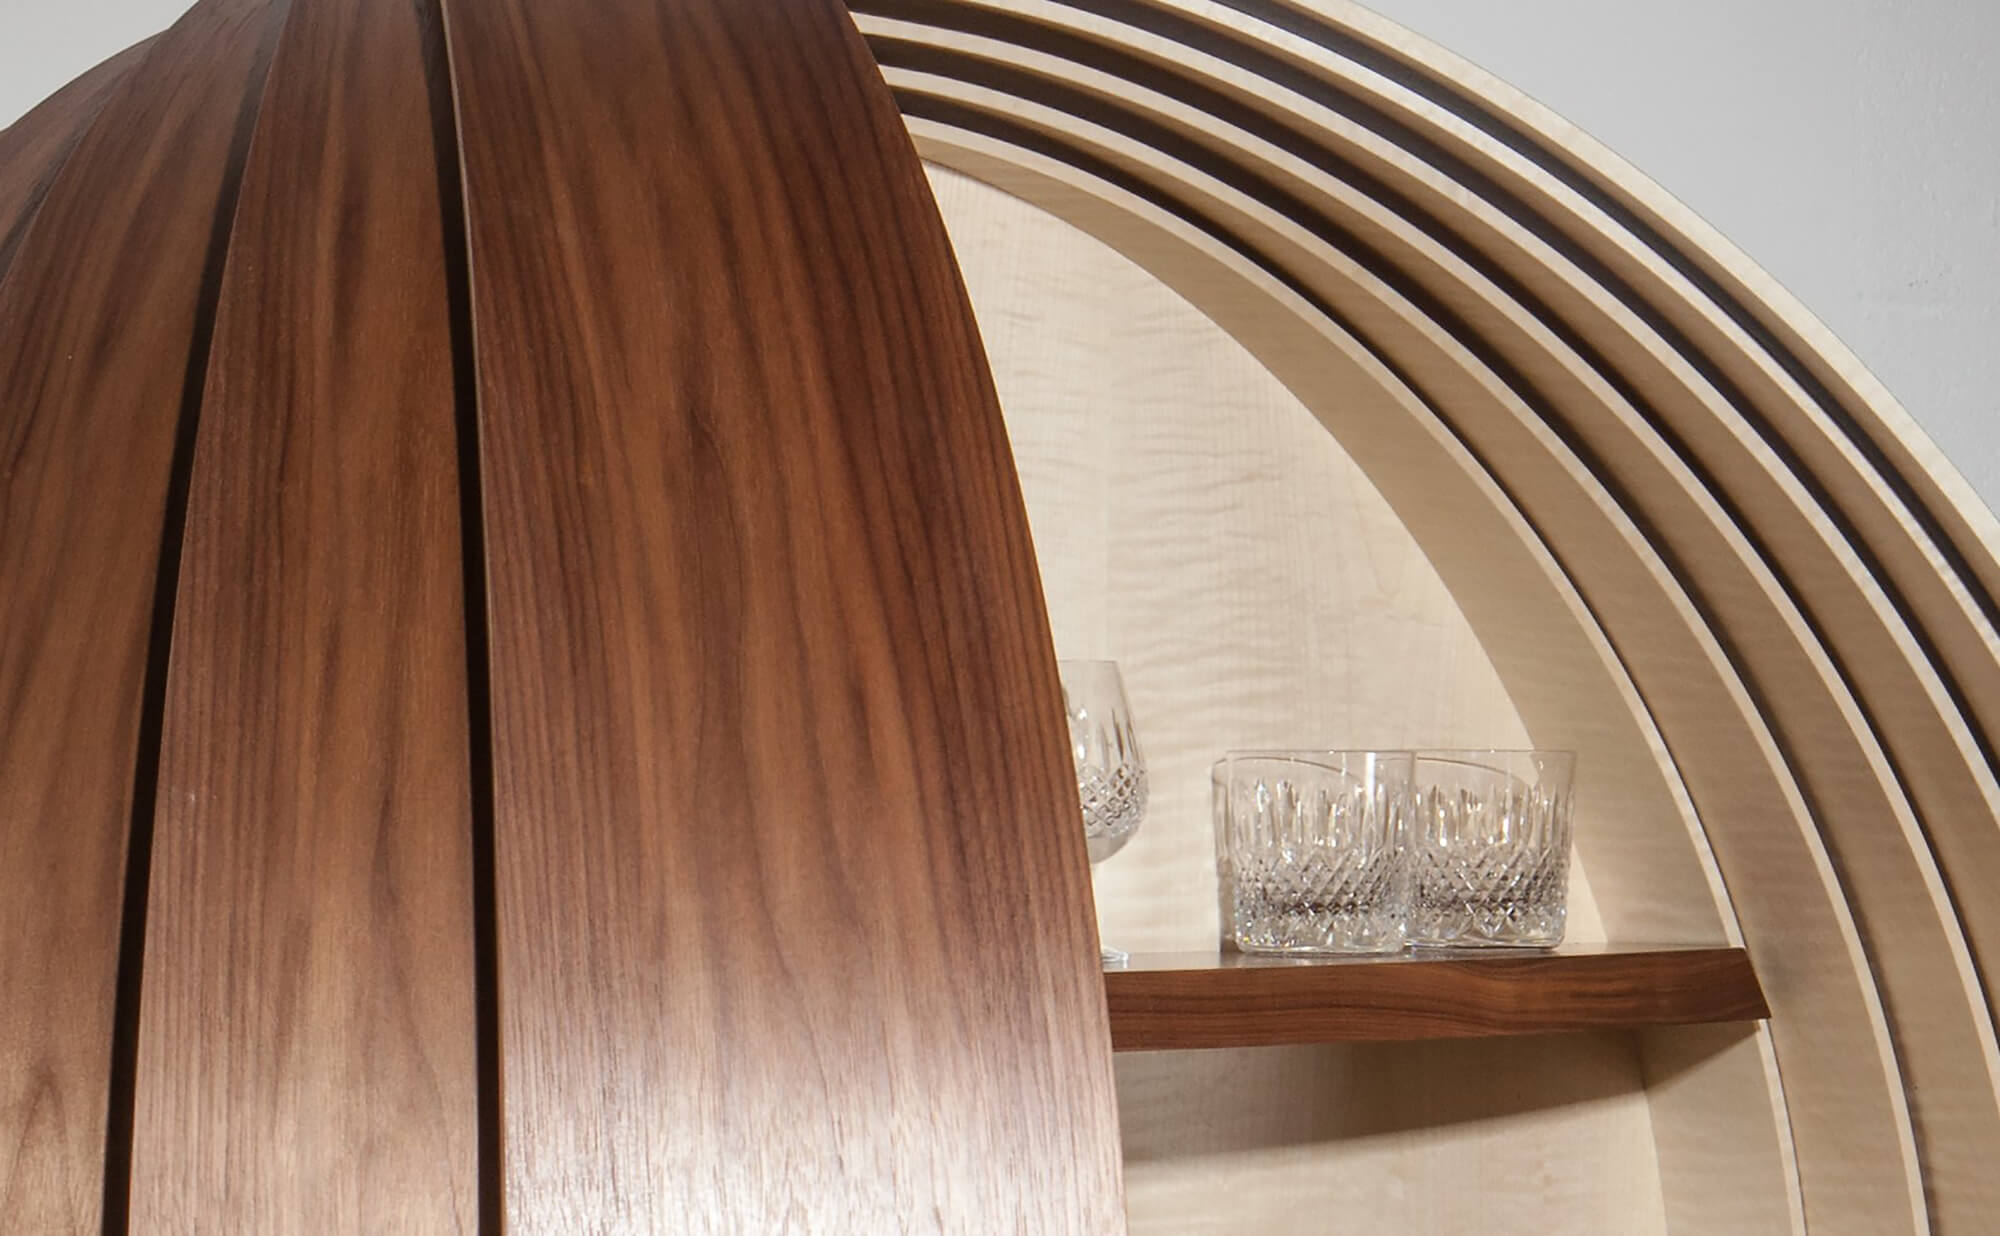 Detail of the luxury Dime bespoke drinks cabinet with crystal glasses on shelf.